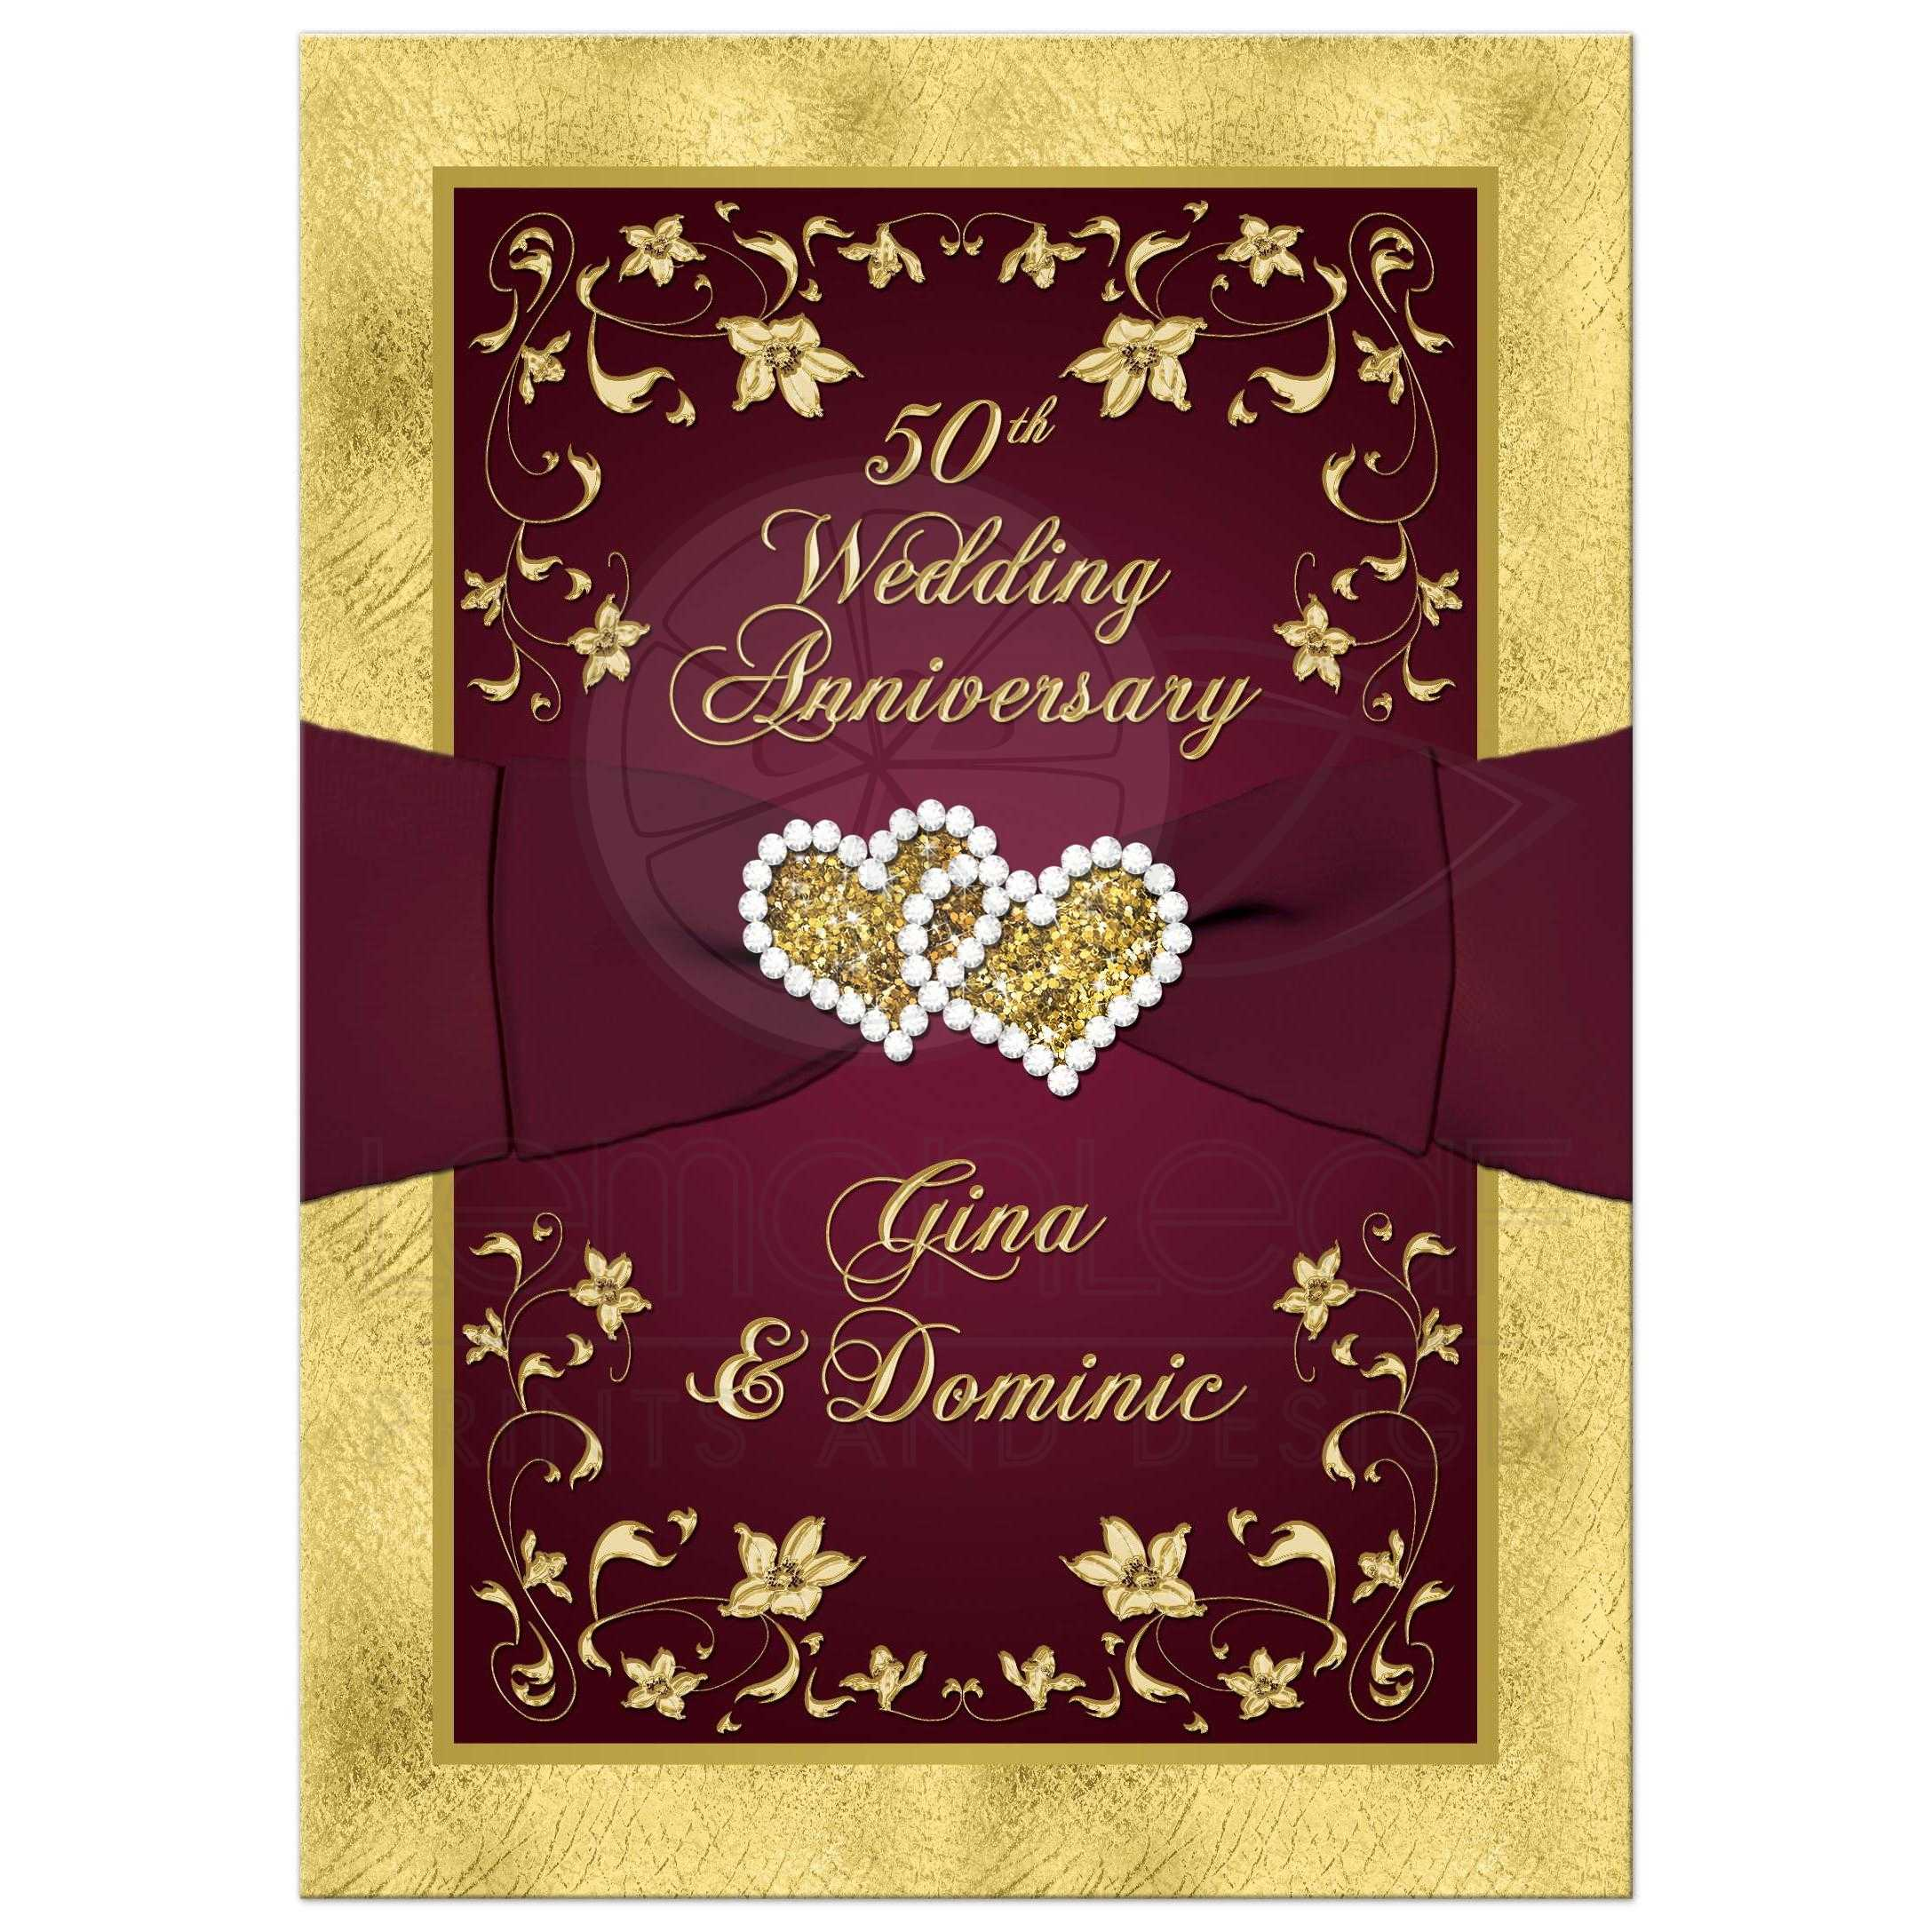 50th Wedding Anniversary Invitation | Wine, Gold Floral ...